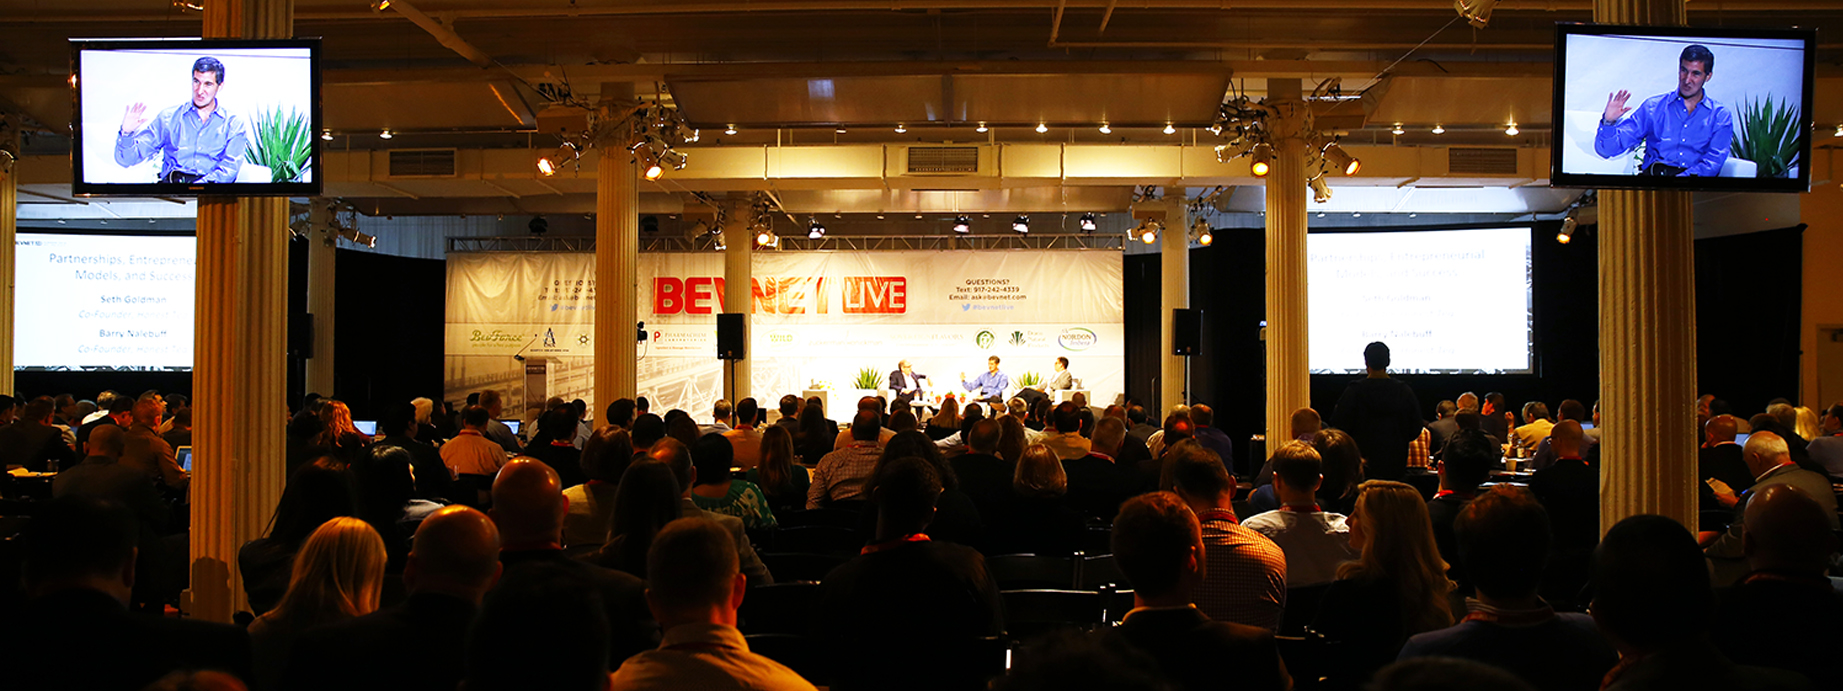 BevNET Live Audience copy